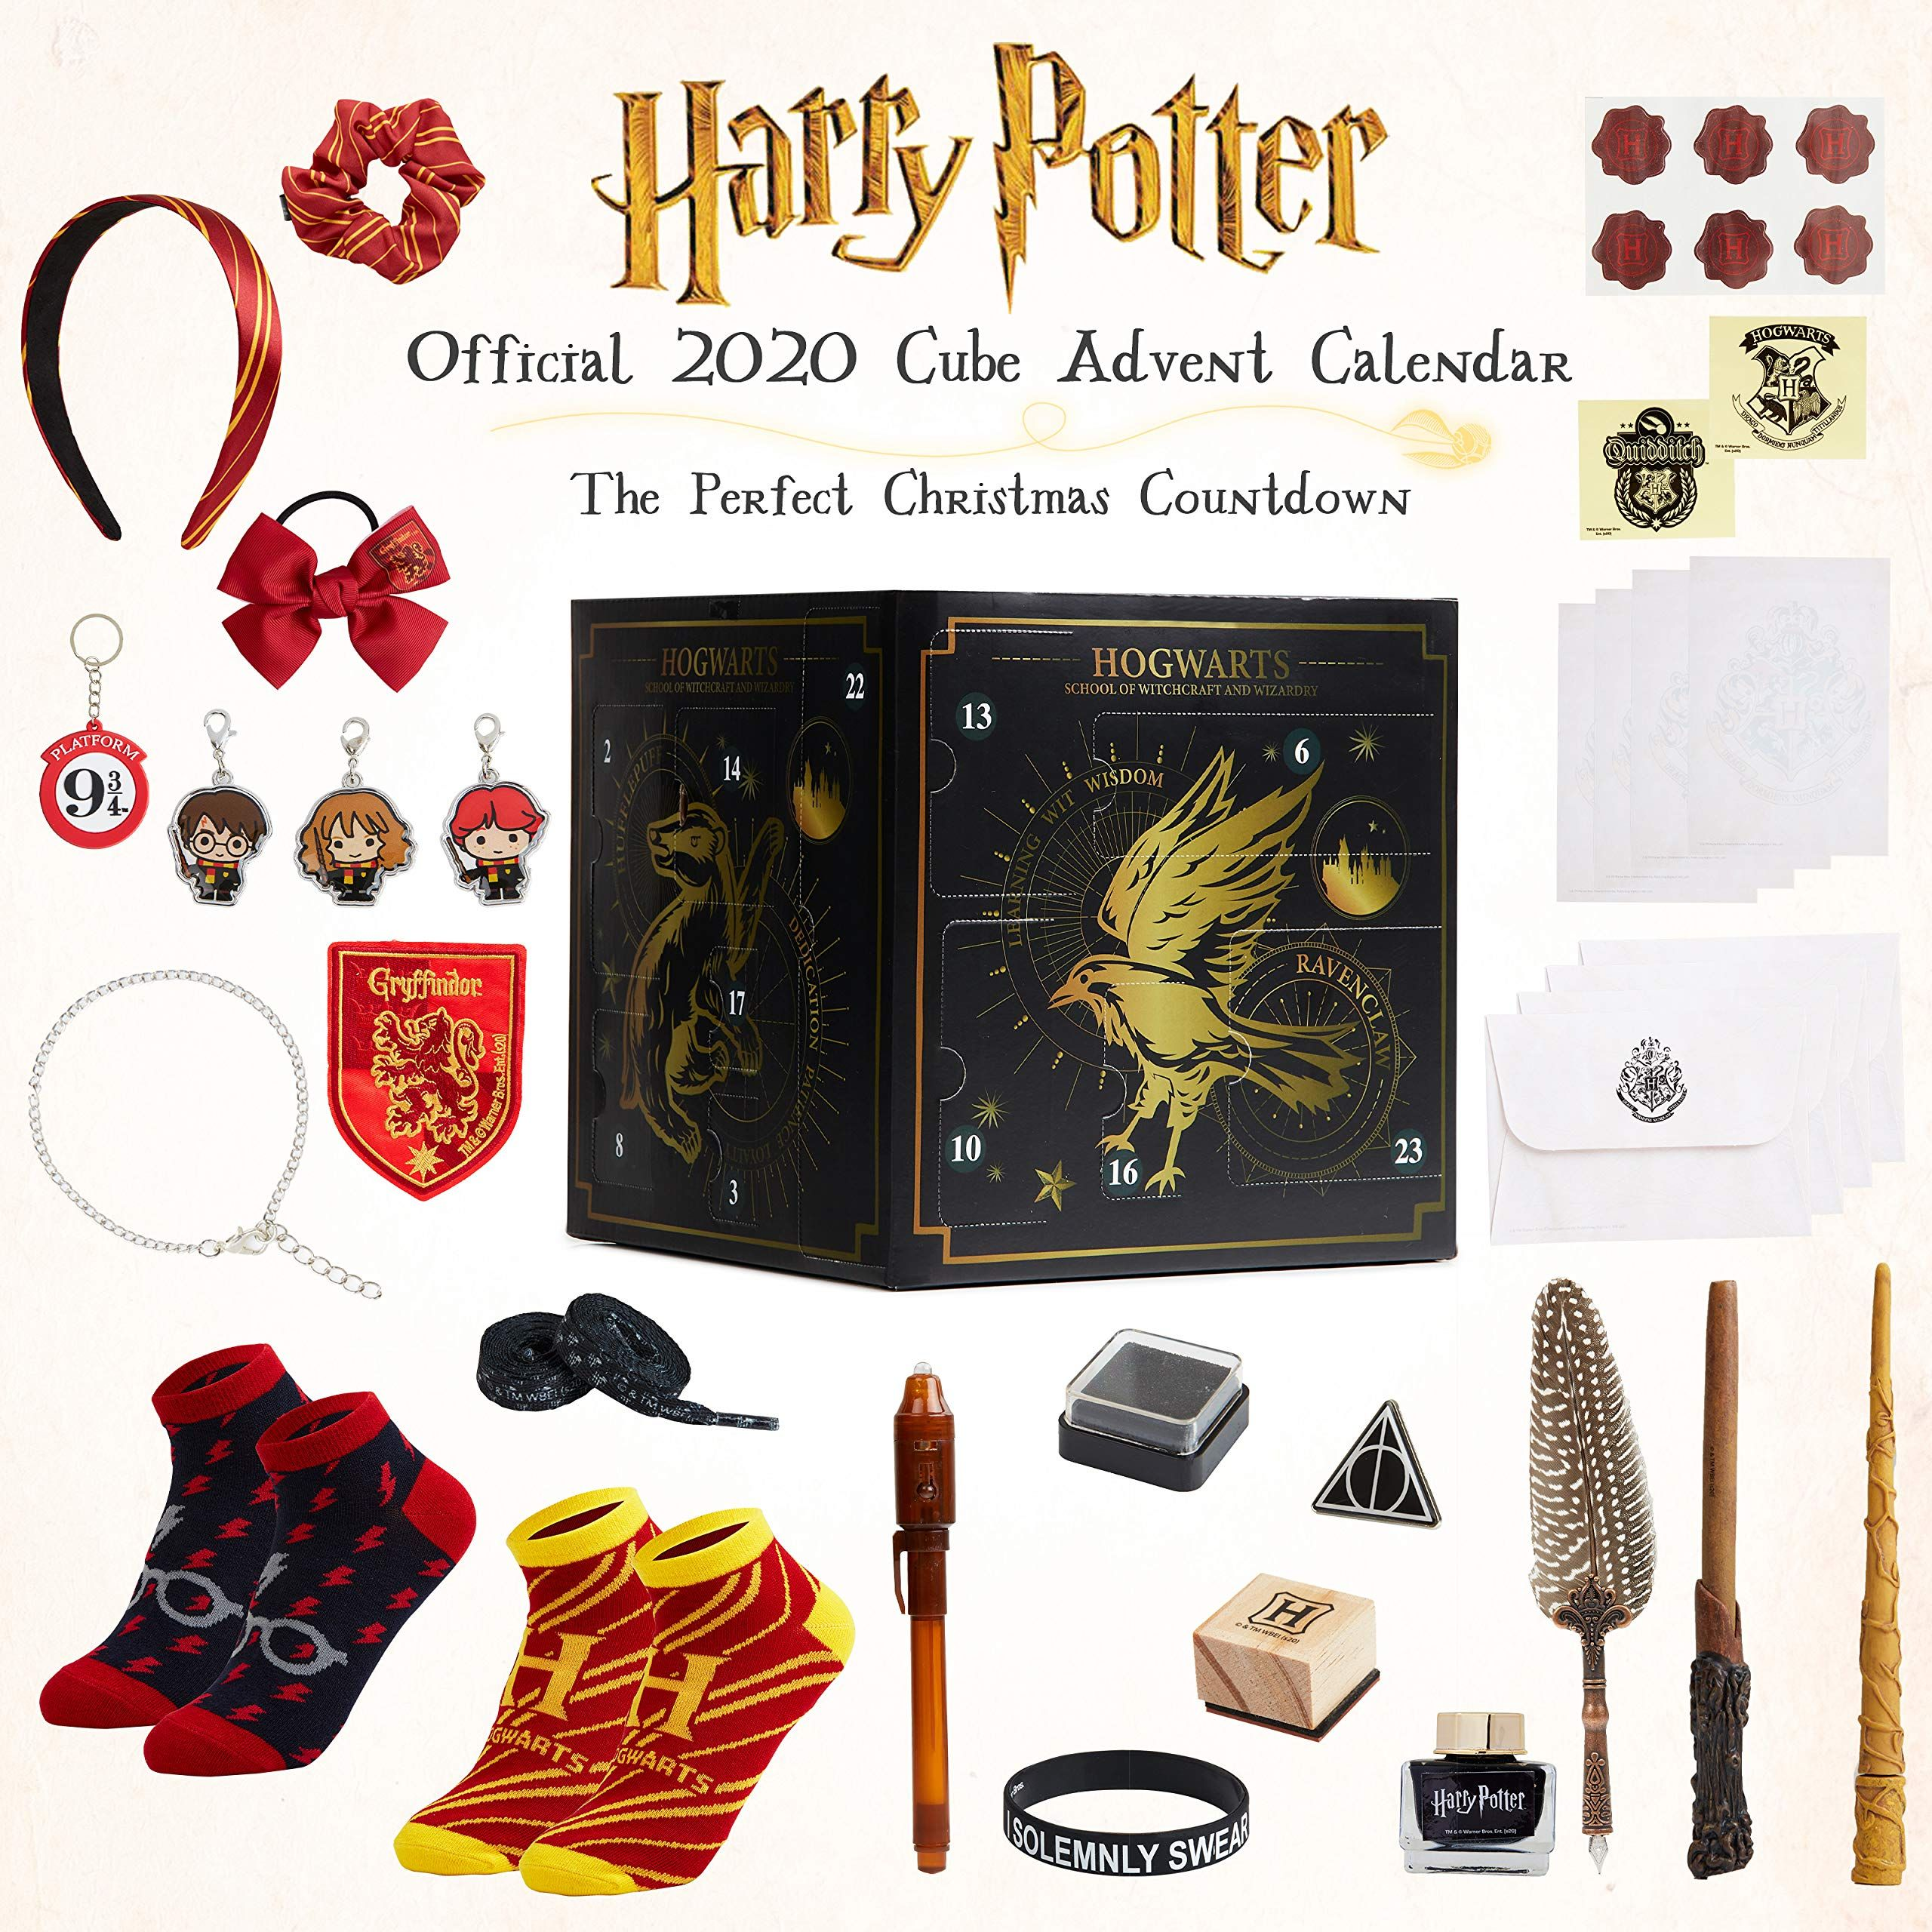 Harry Potter Advent Calendar 2020 Cube Christmas Countdown Calender With 24 Surprises Includi Harry Potter Advent Calendar Christmas Countdown Advent Calendar